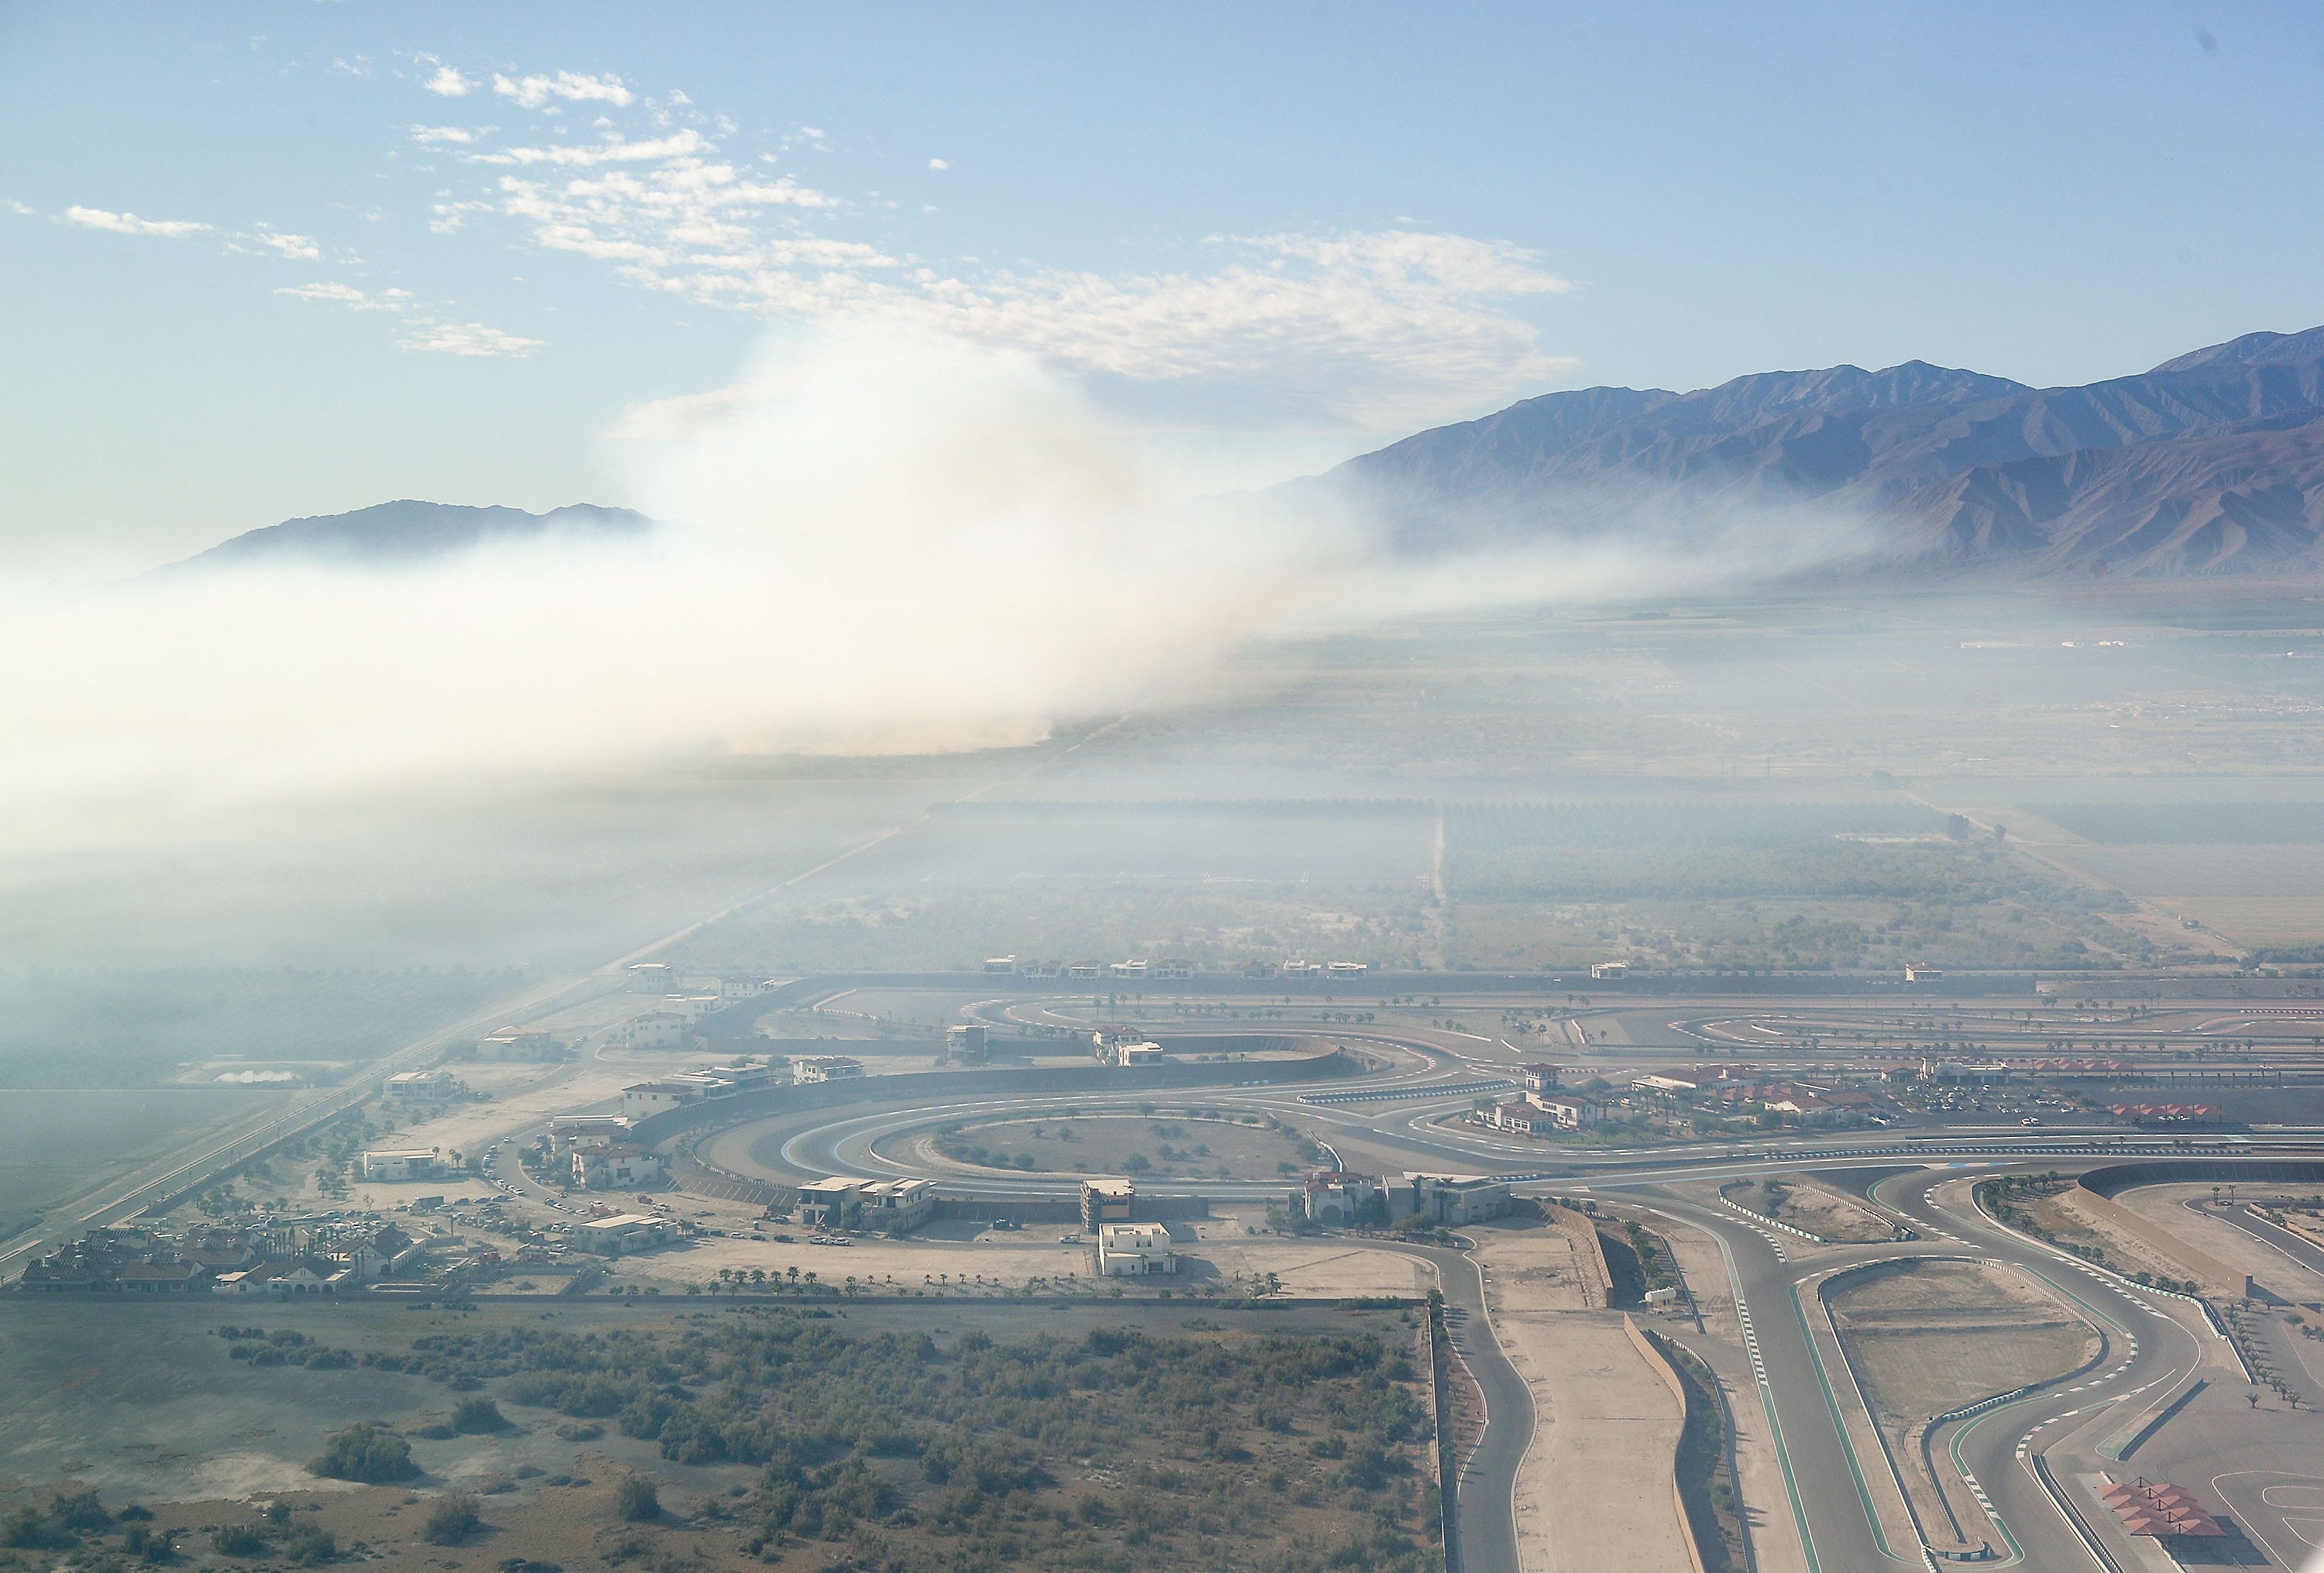 Smoke from the dump fire in Thermal, Calif., pollutes the air just a short distance from The Thermal Club race track (lower right) in this aerial photo, October 17, 2019.